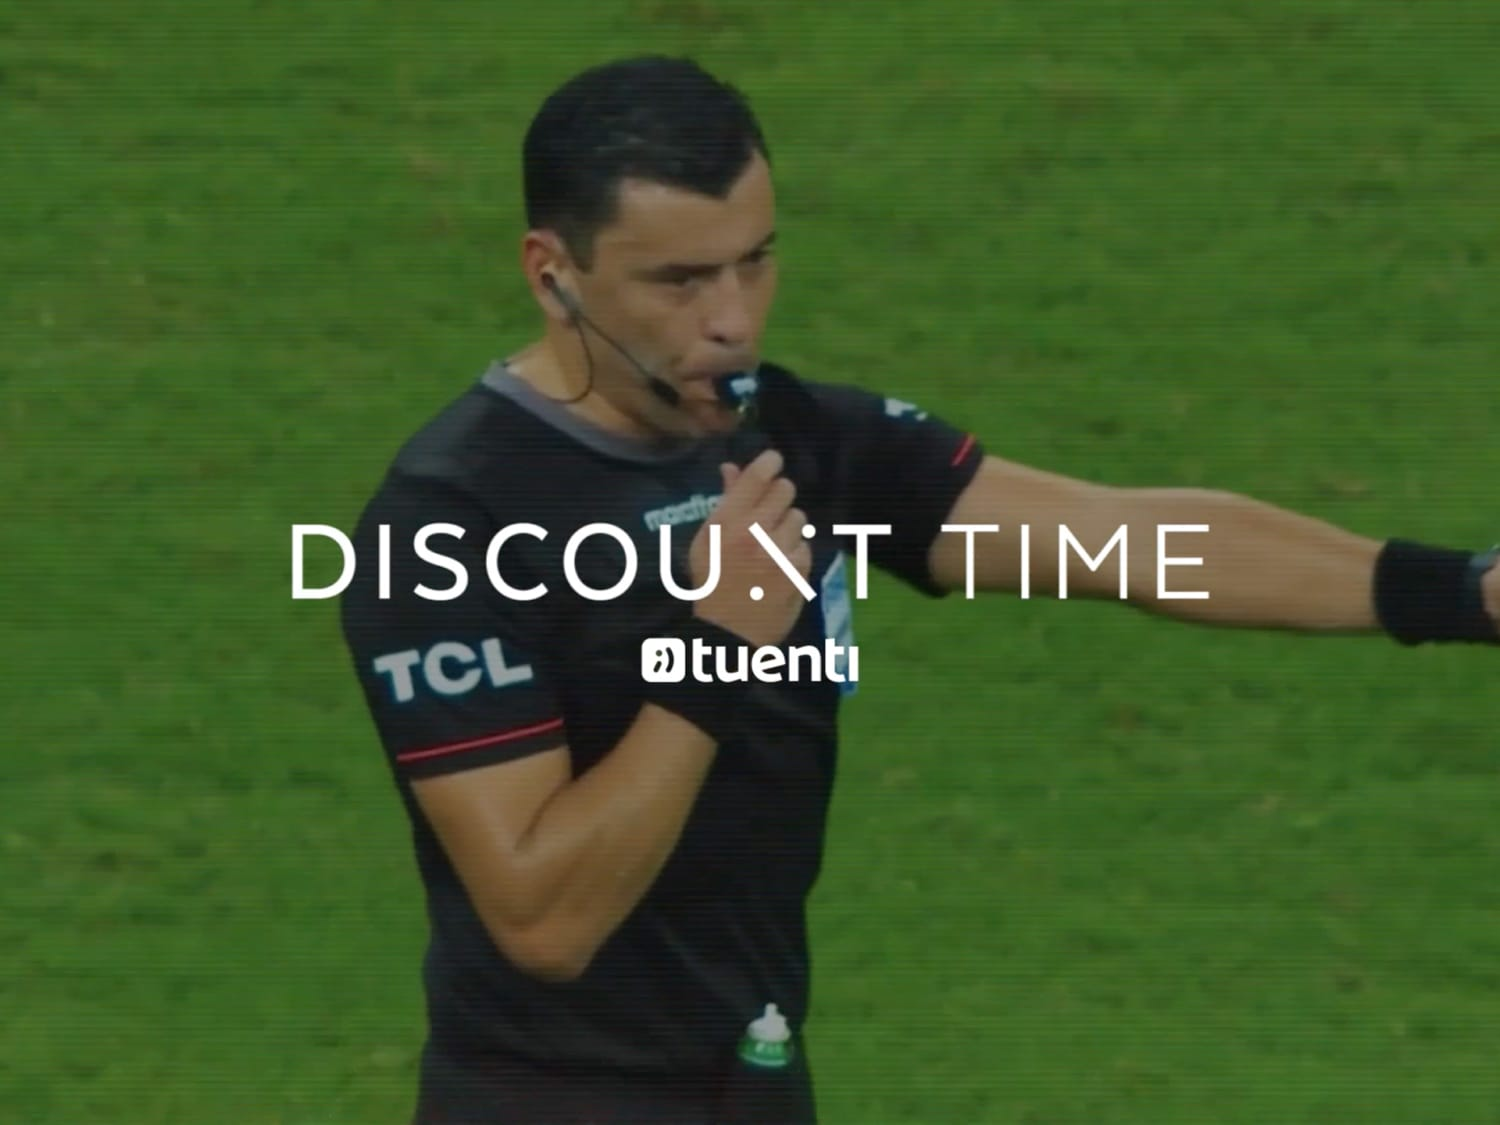 Discount Time 1